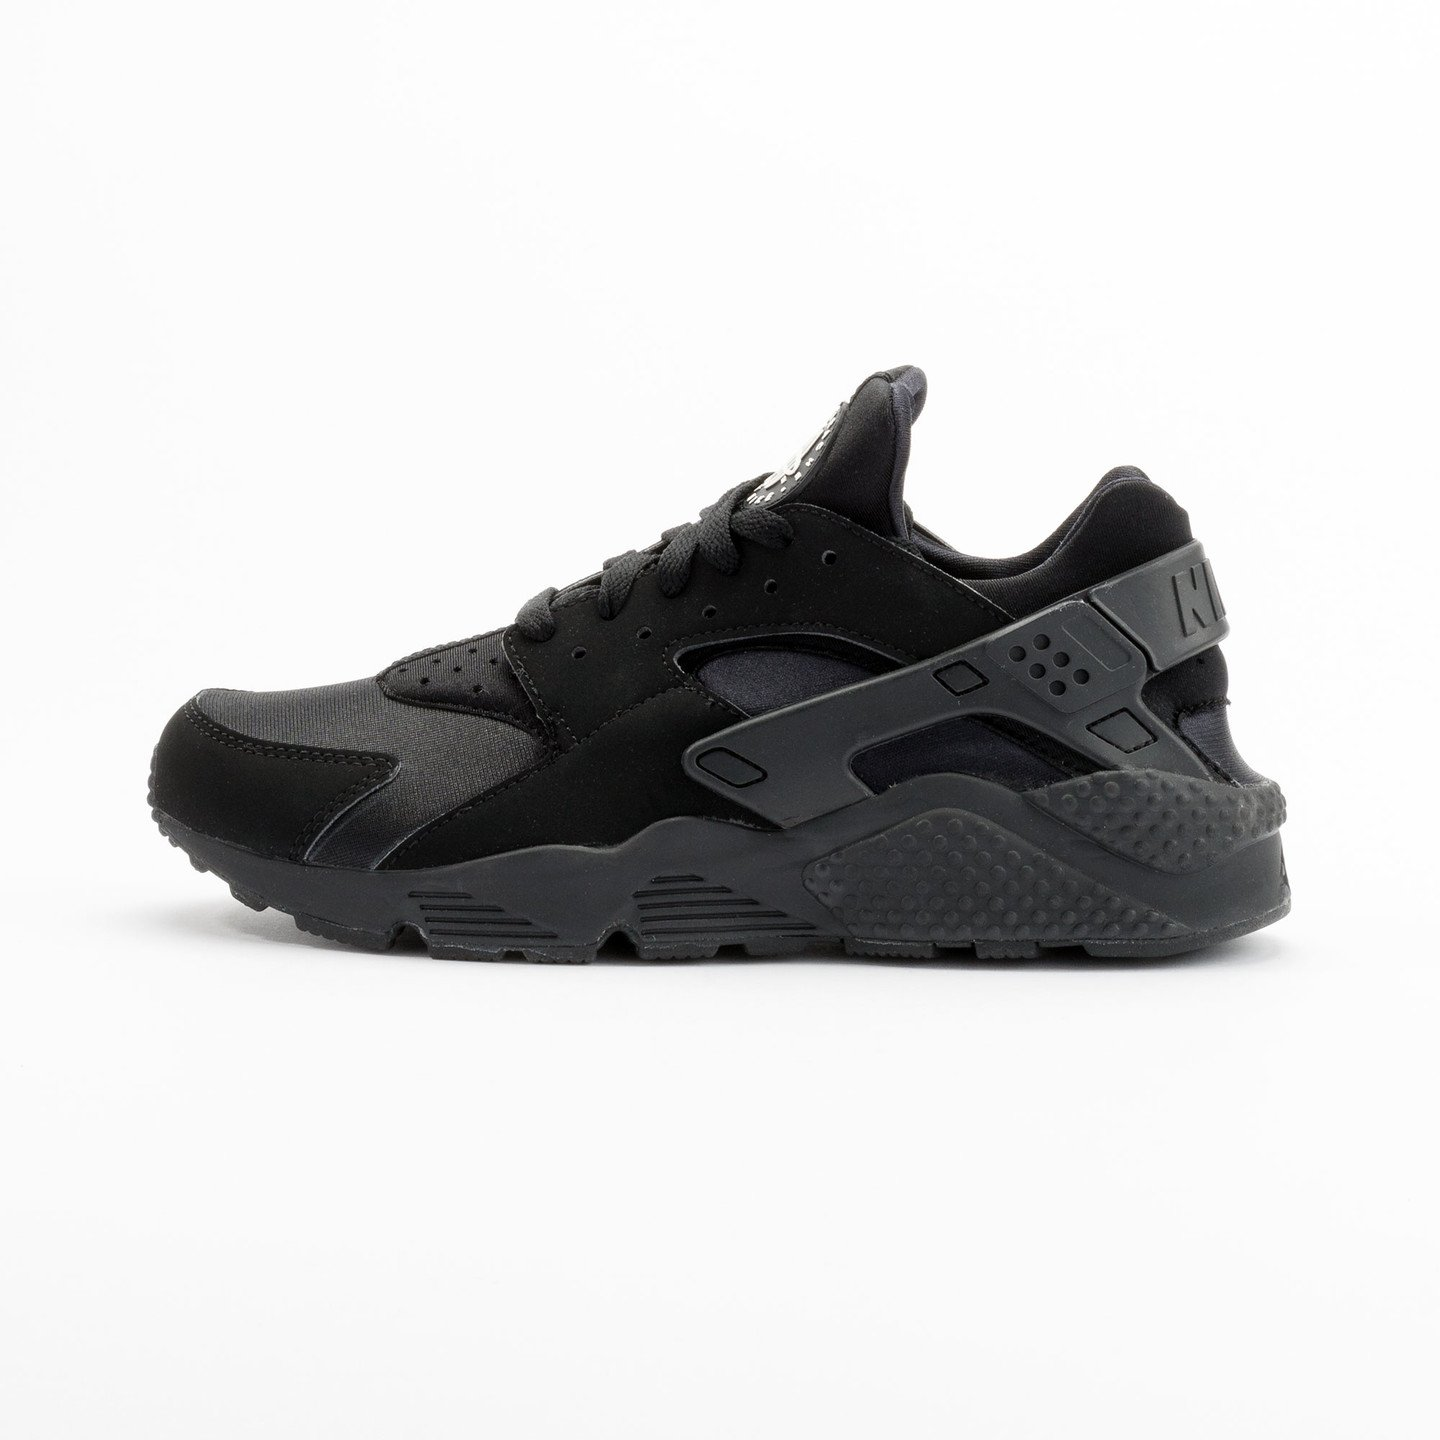 Nike Air Huarache Black/Black-White 318429-003-39